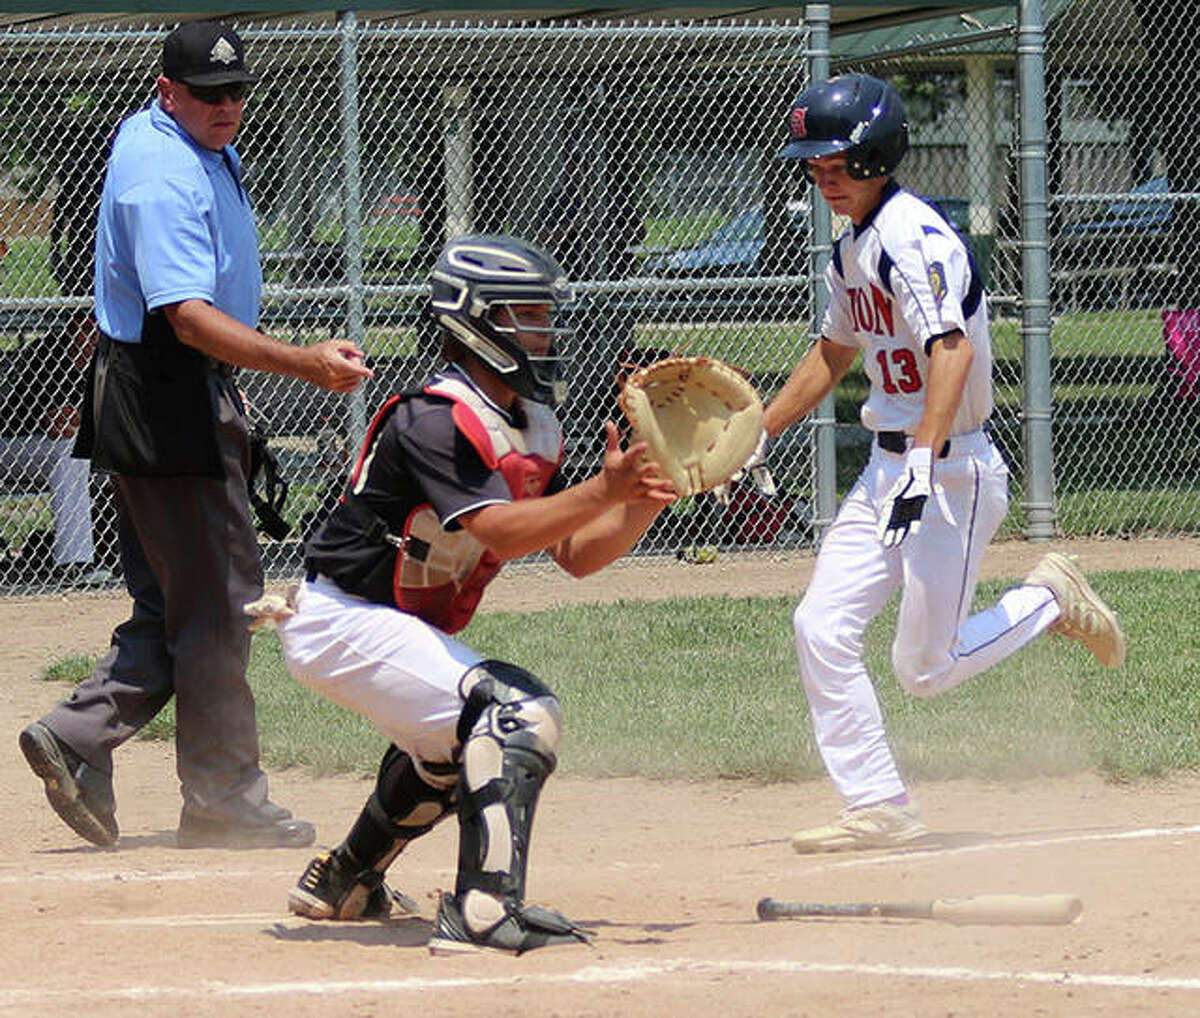 Alton's Austin Callovini (right) scored the winning run in the bottom of the seventh inning in Thursday night's 6-5 victory over Trenton in a Fifth Division American Legion baseball tournament game in Centralia. He is shown scoring in a Firecracker Tournament game earlier this season.